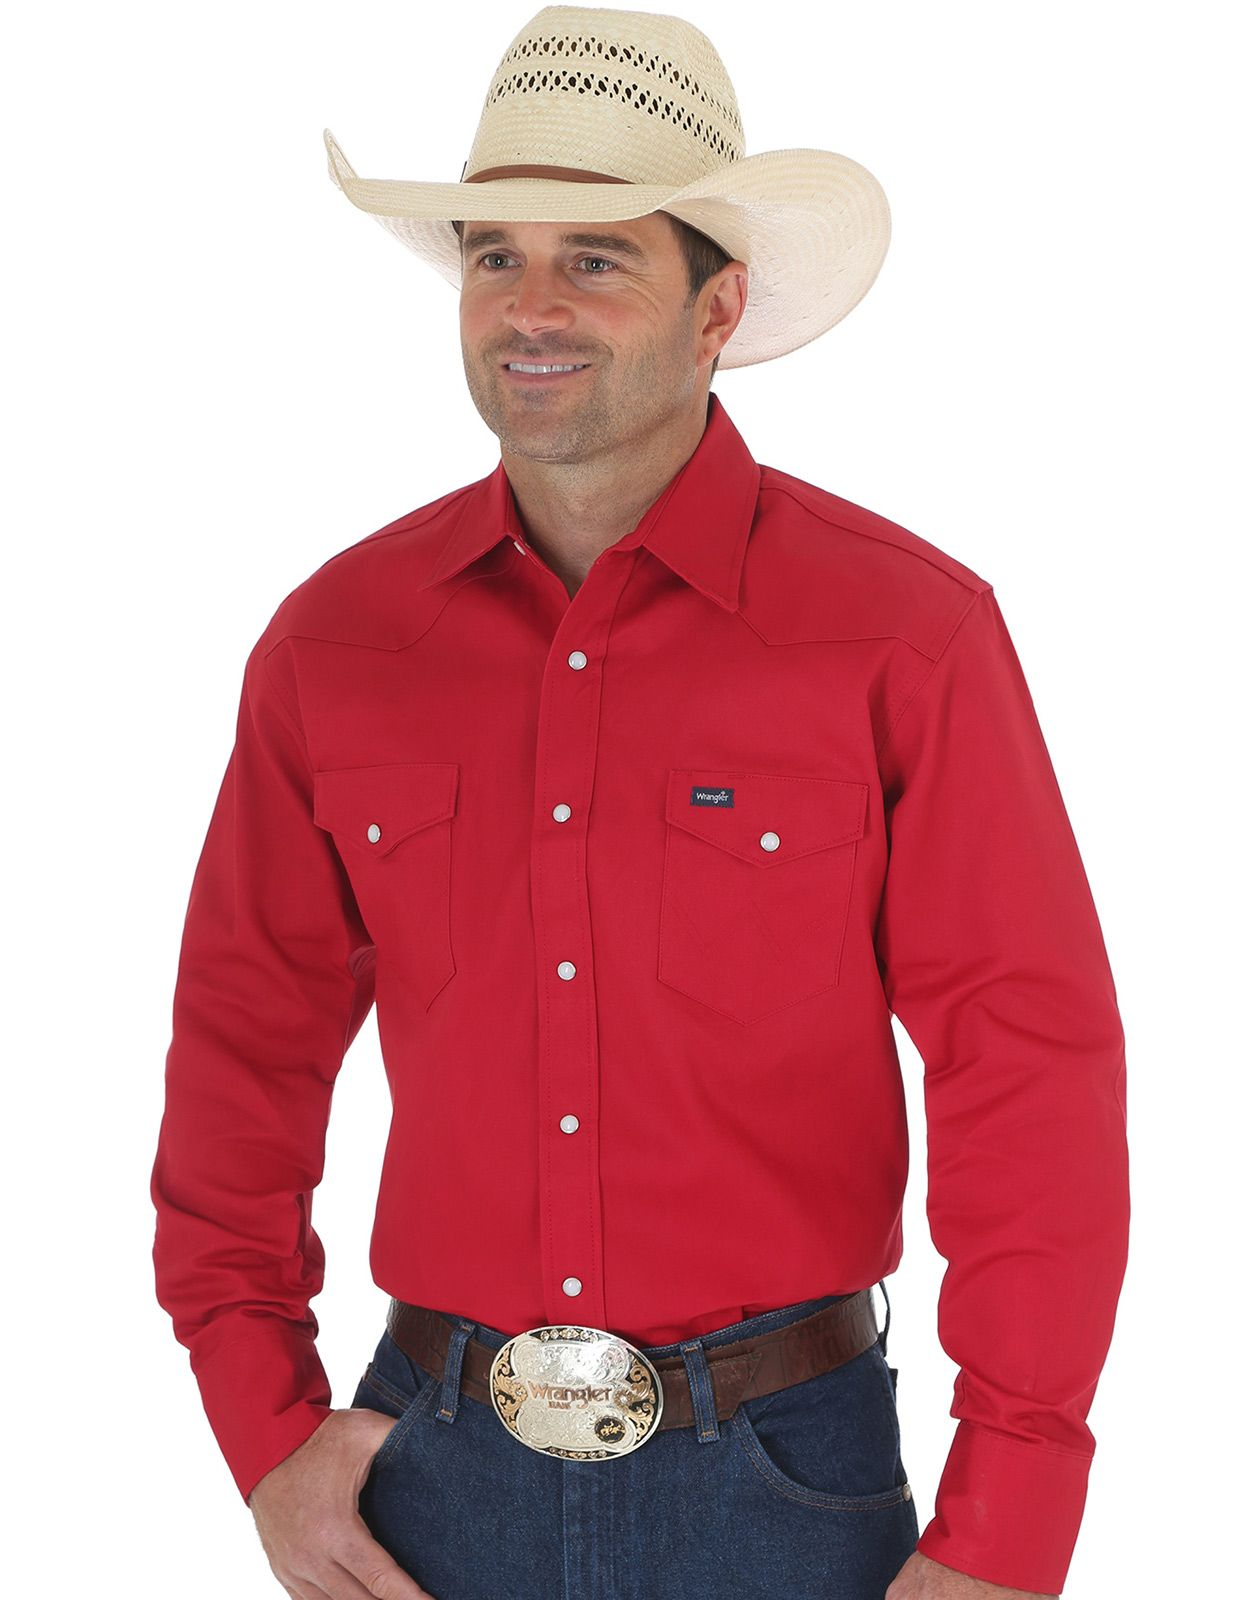 Wrangler Men's Classic Fit Firm Finish Basic Twill Long Sleeve Solid Snap Work Shirt - Red